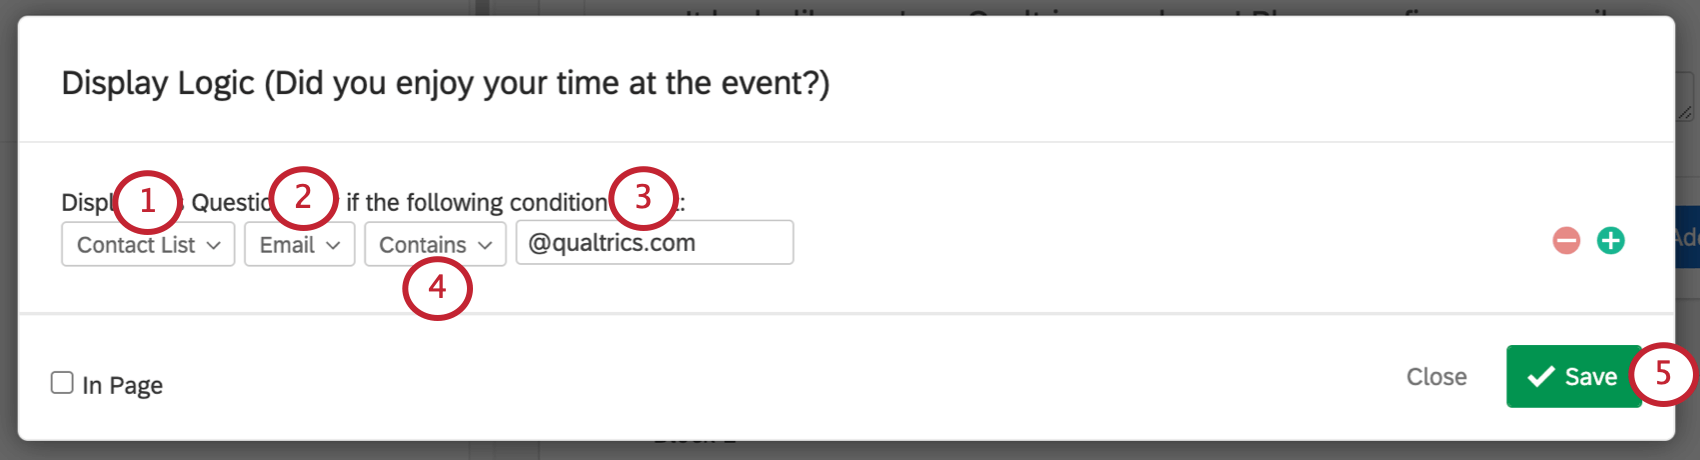 Contact list selected. First Name field selected. Email is selected and set equal to qualtrics.com. Equal to being changed to contains. save button on lower-right